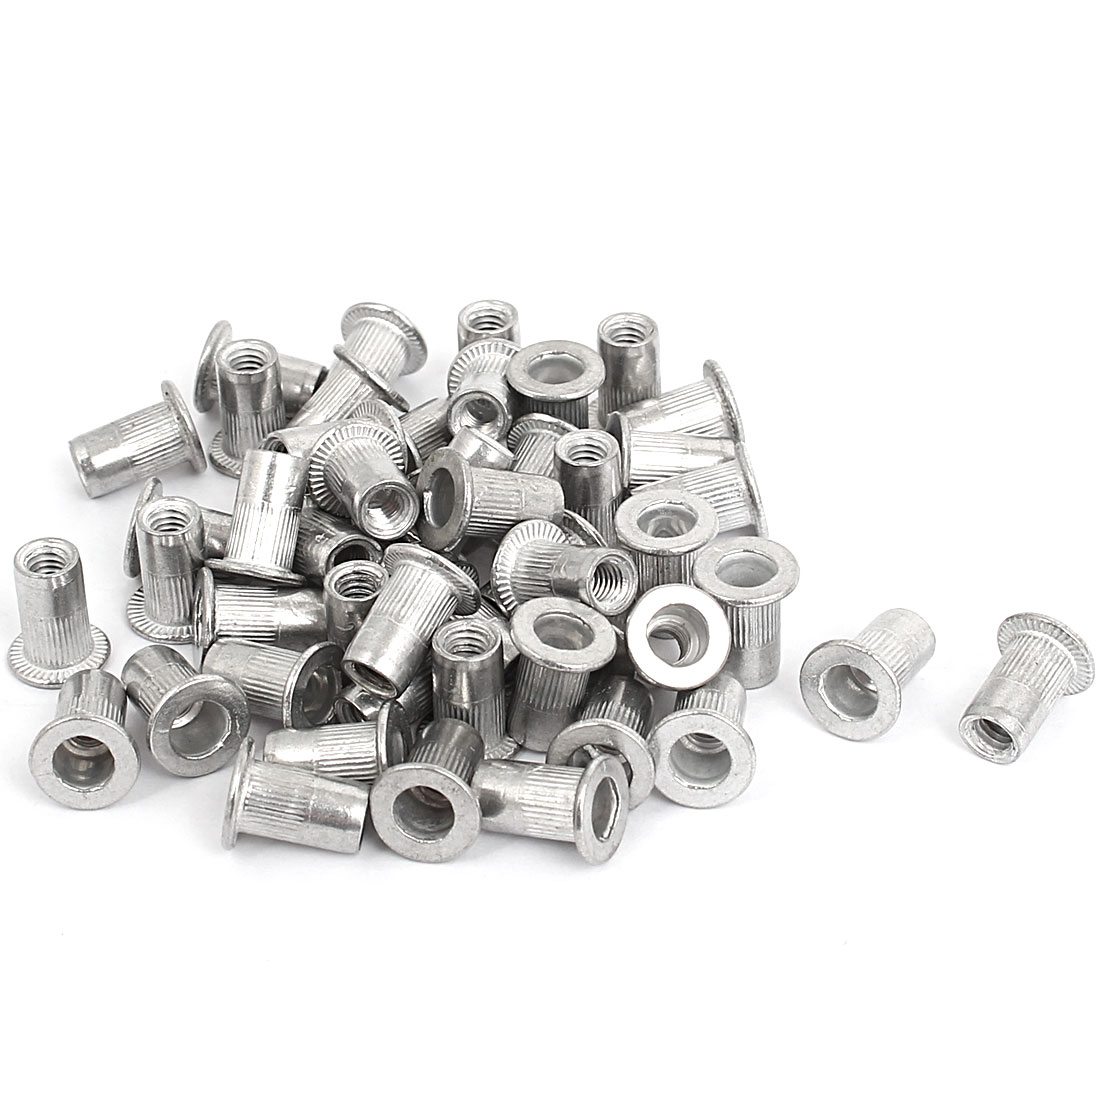 M4 Thread Aluminum Rivet Nut Insert Nutsert 50pcs